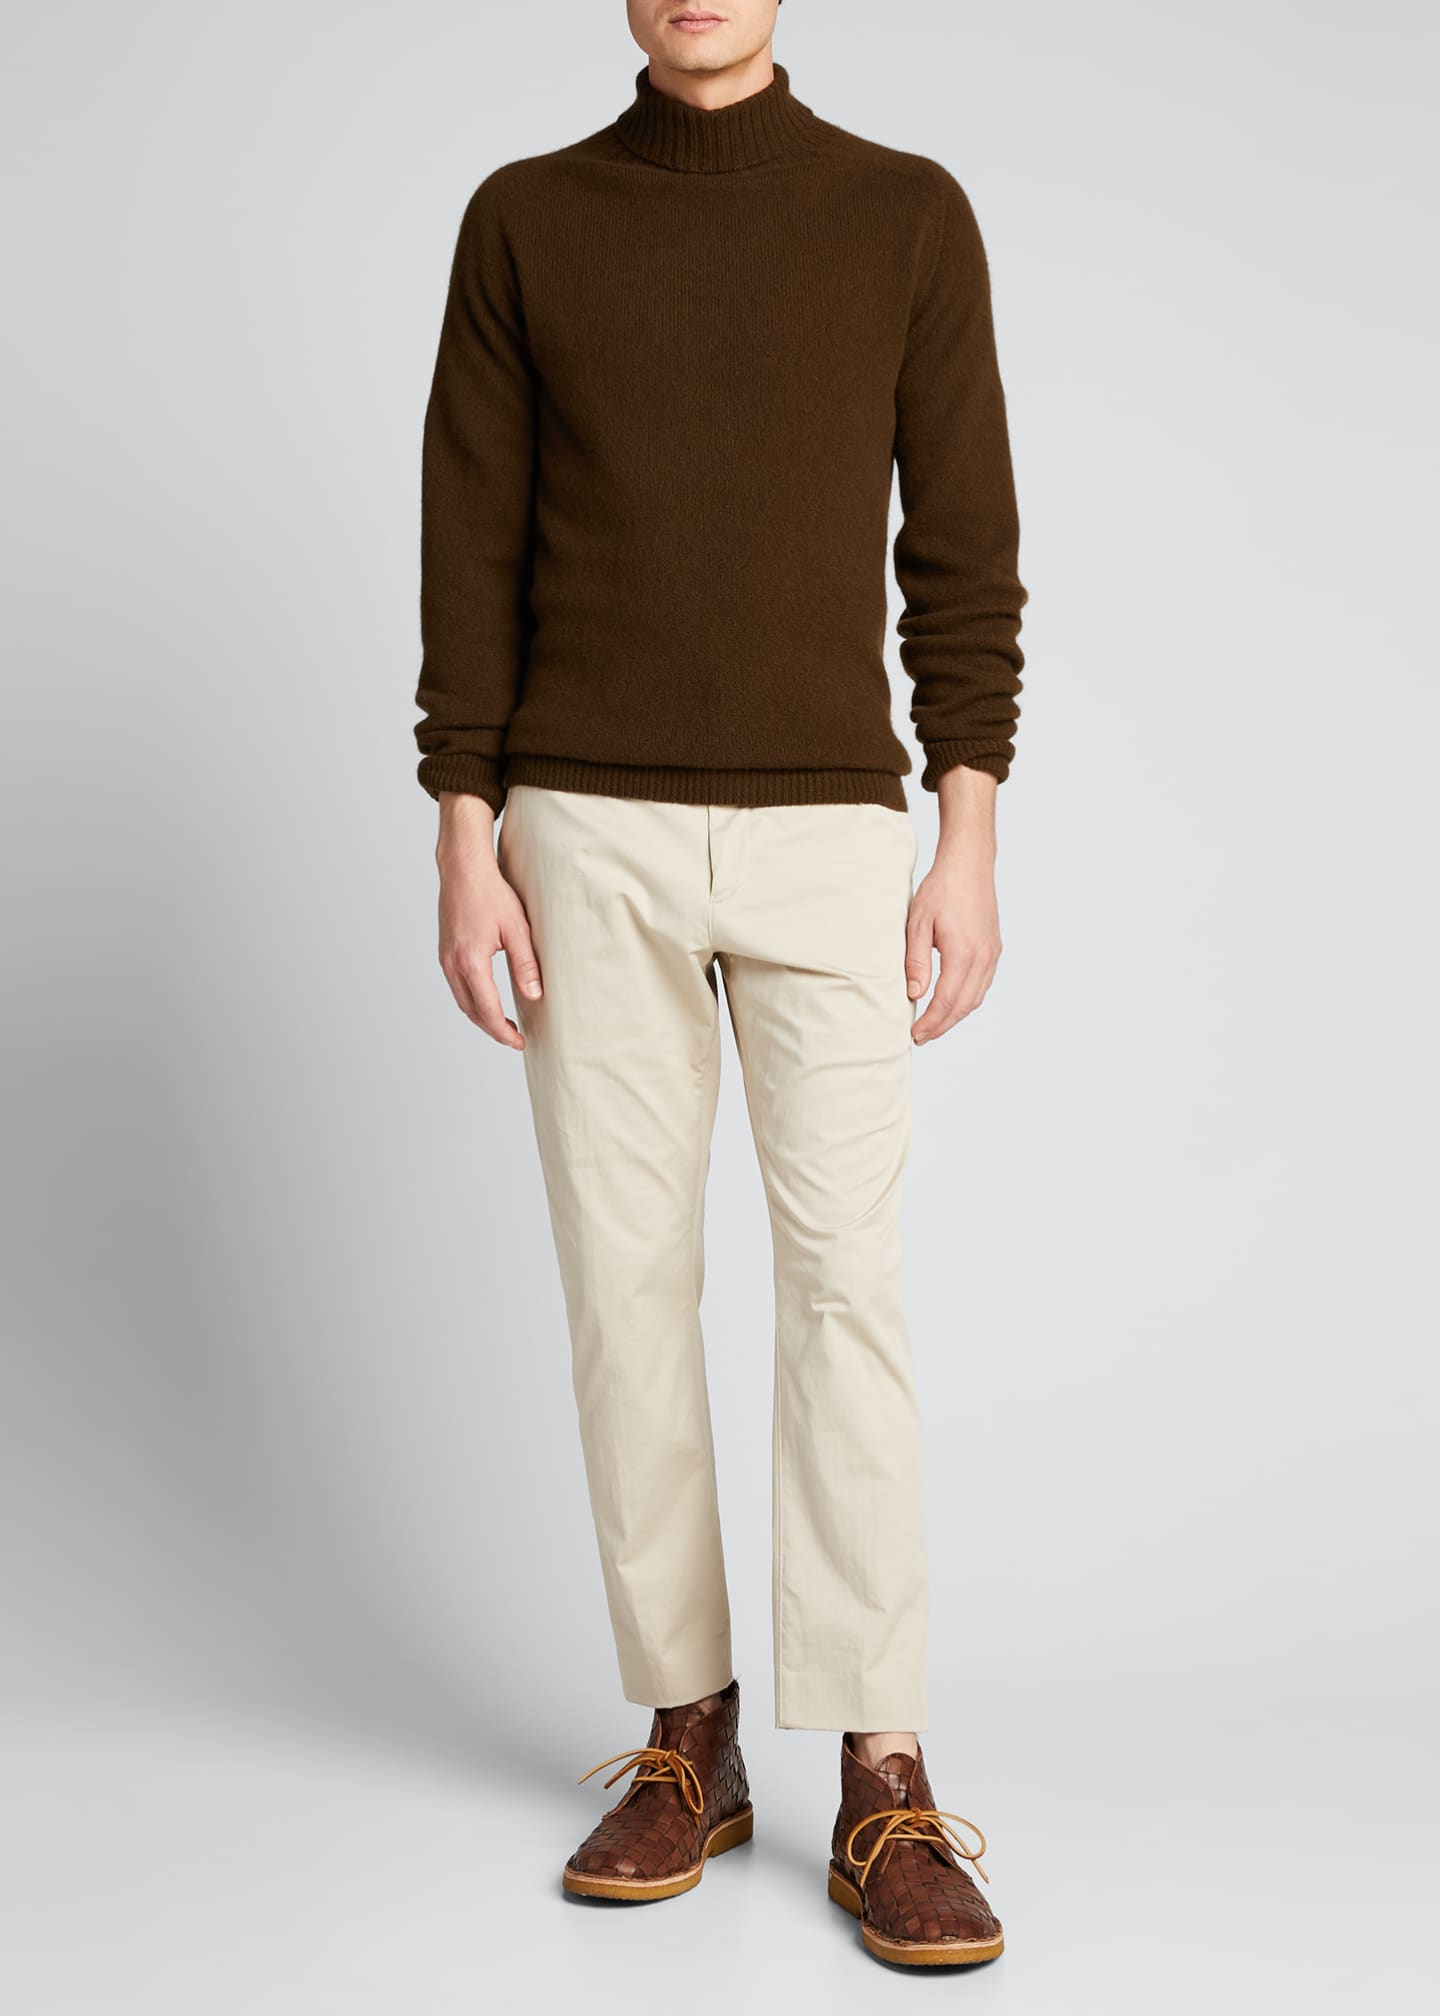 Margaret Howell Men's Solid Wool-Cashmere Turtleneck Sweater